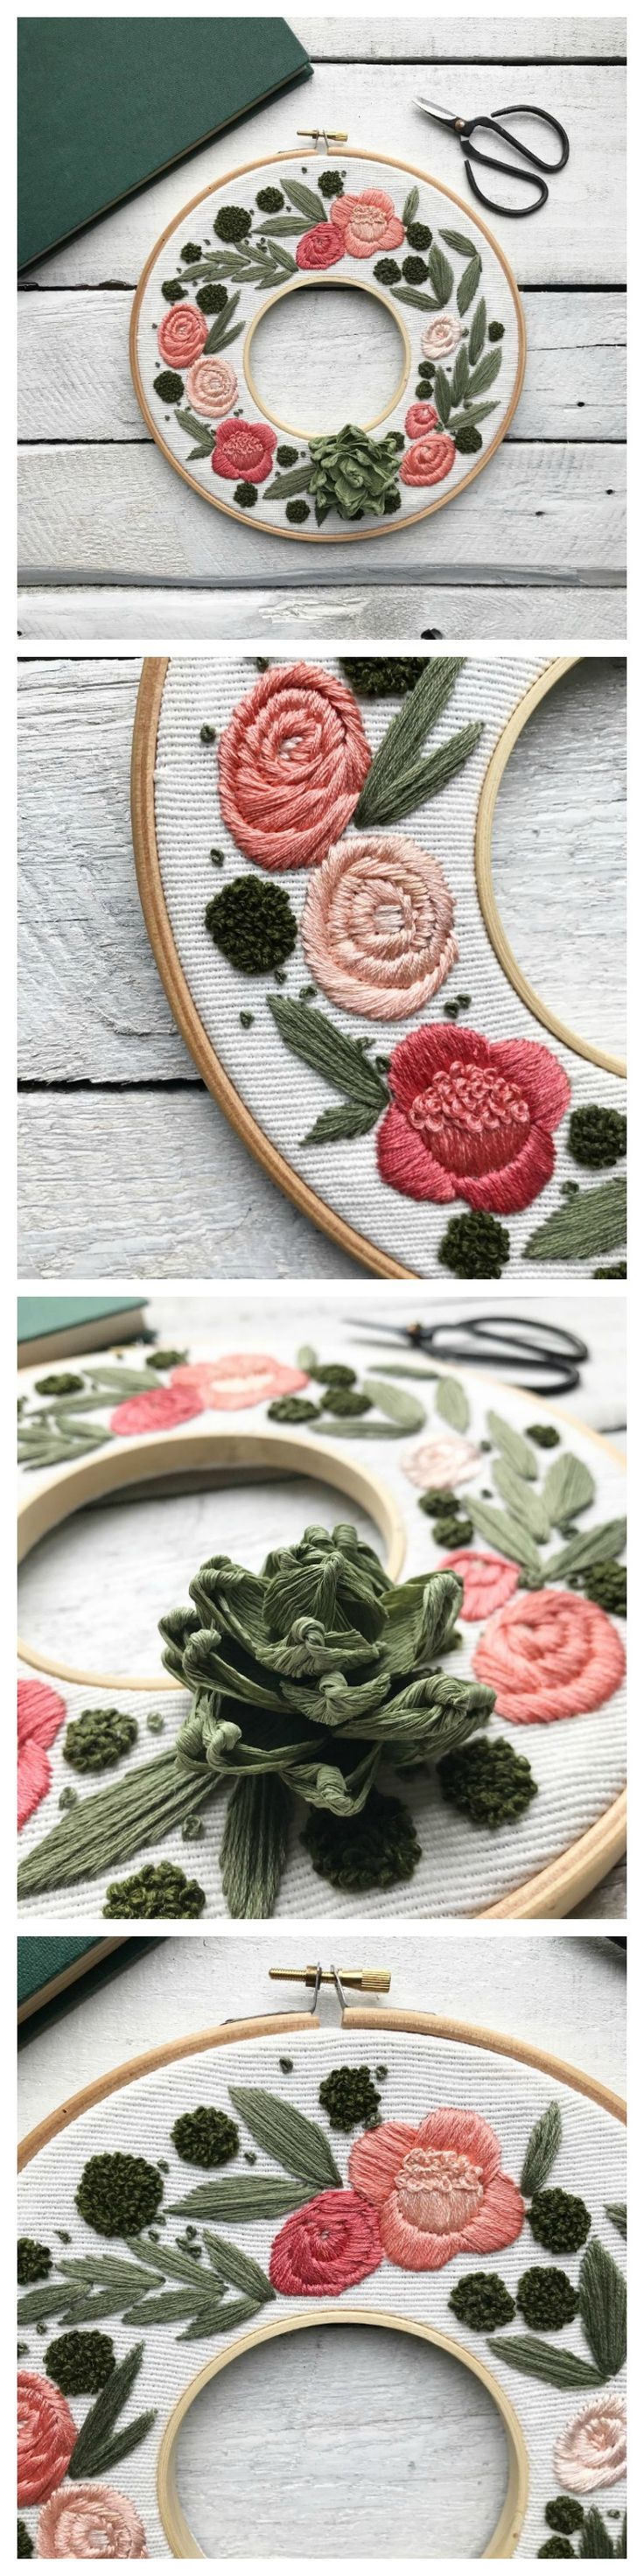 Floral 3D embroidered wreath by Ovo Bloom